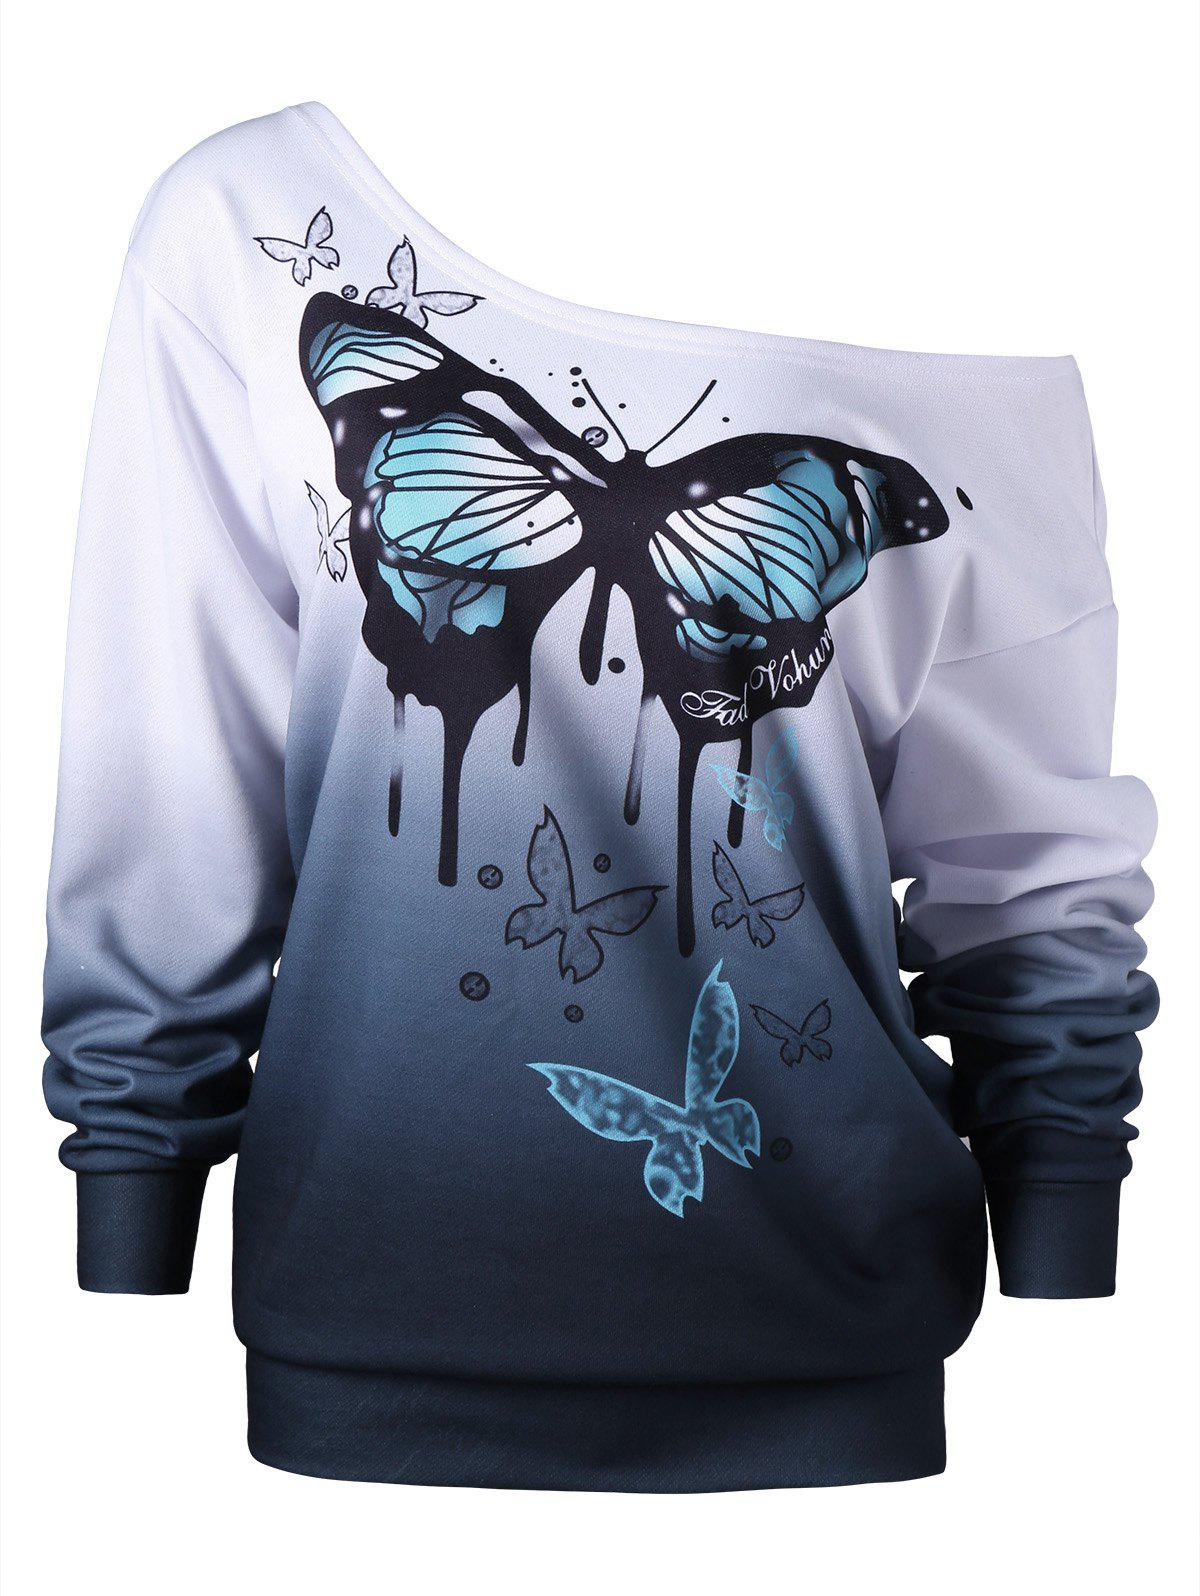 Plus Size Buttterfly Print Ombre SweatshirtWOMEN<br><br>Size: XL; Color: WHITE; Material: Cotton,Polyester; Shirt Length: Regular; Sleeve Length: Full; Style: Fashion; Pattern Style: Ombre,Print; Season: Fall,Spring; Weight: 0.4500kg; Package Contents: 1 x Sweatshirt;